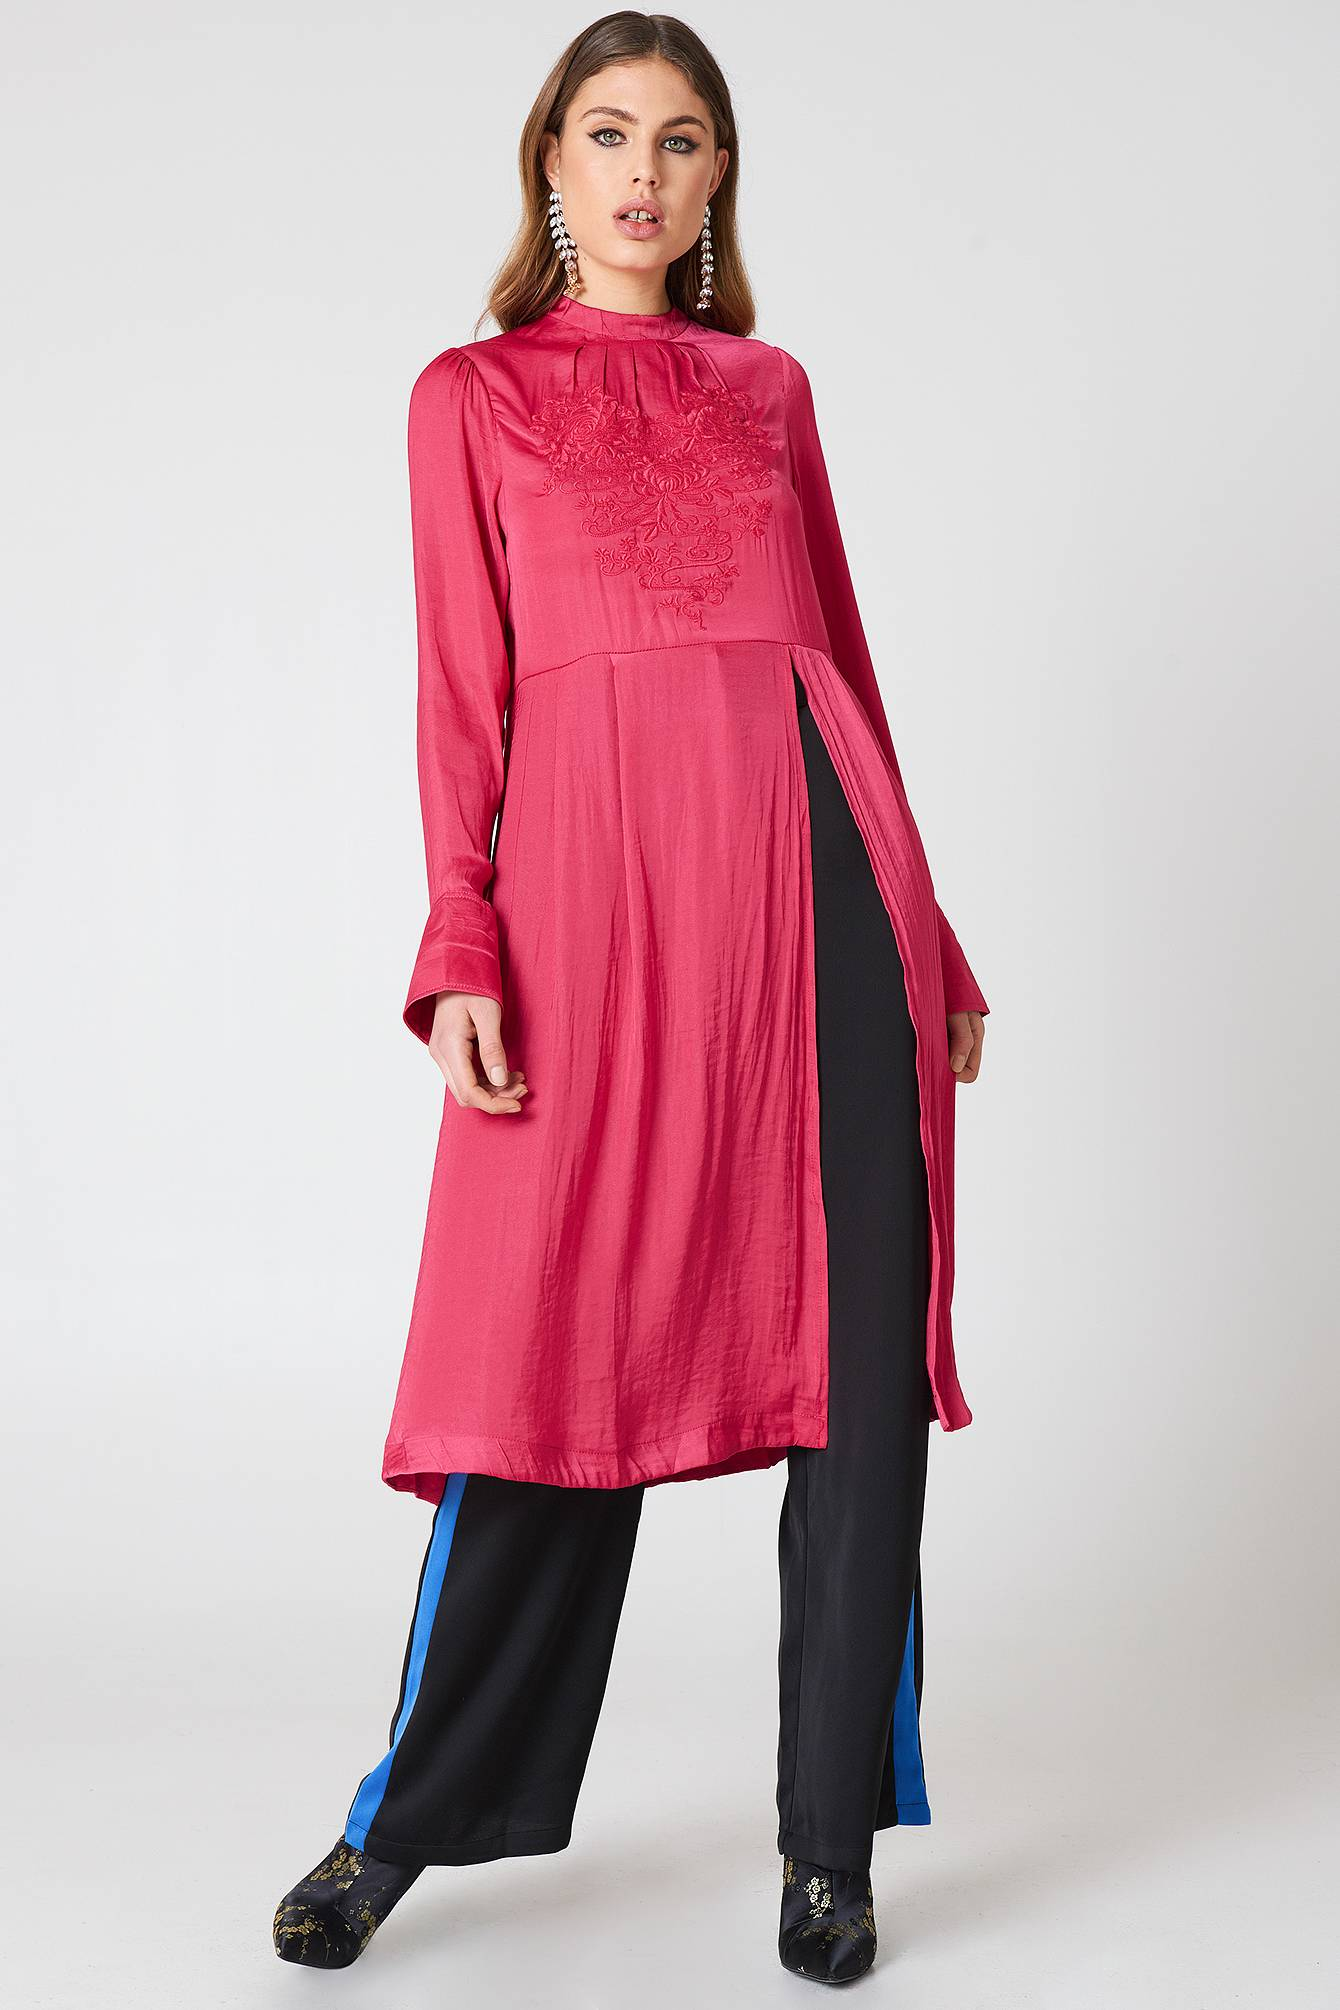 Free People New Day Embroidered Tunic - Pink